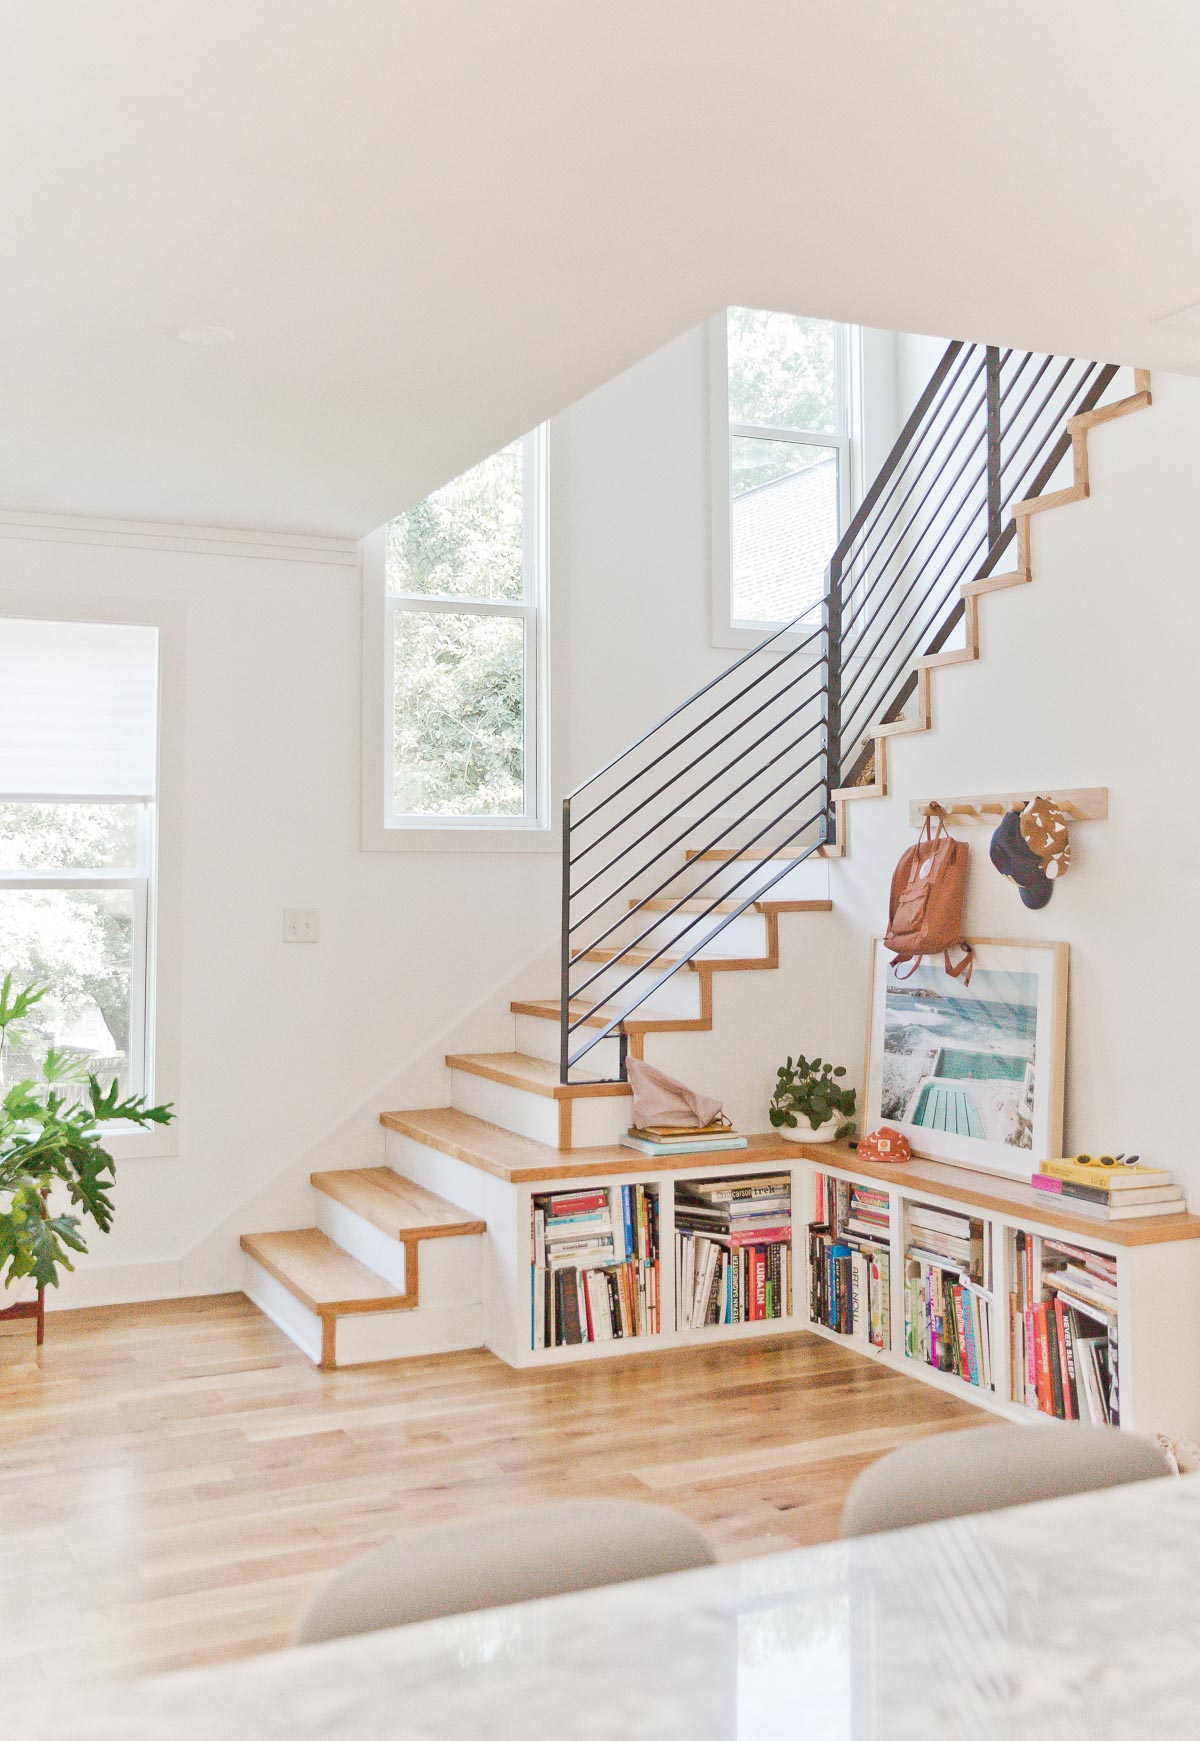 A California born DIY designer makes a home in Atlanta, GA inspired by her west coast roots and laidback style. #modernhome #organicmodern #diningroom #californiastyle #staircase #modernbookshelf #builtinbookshelf